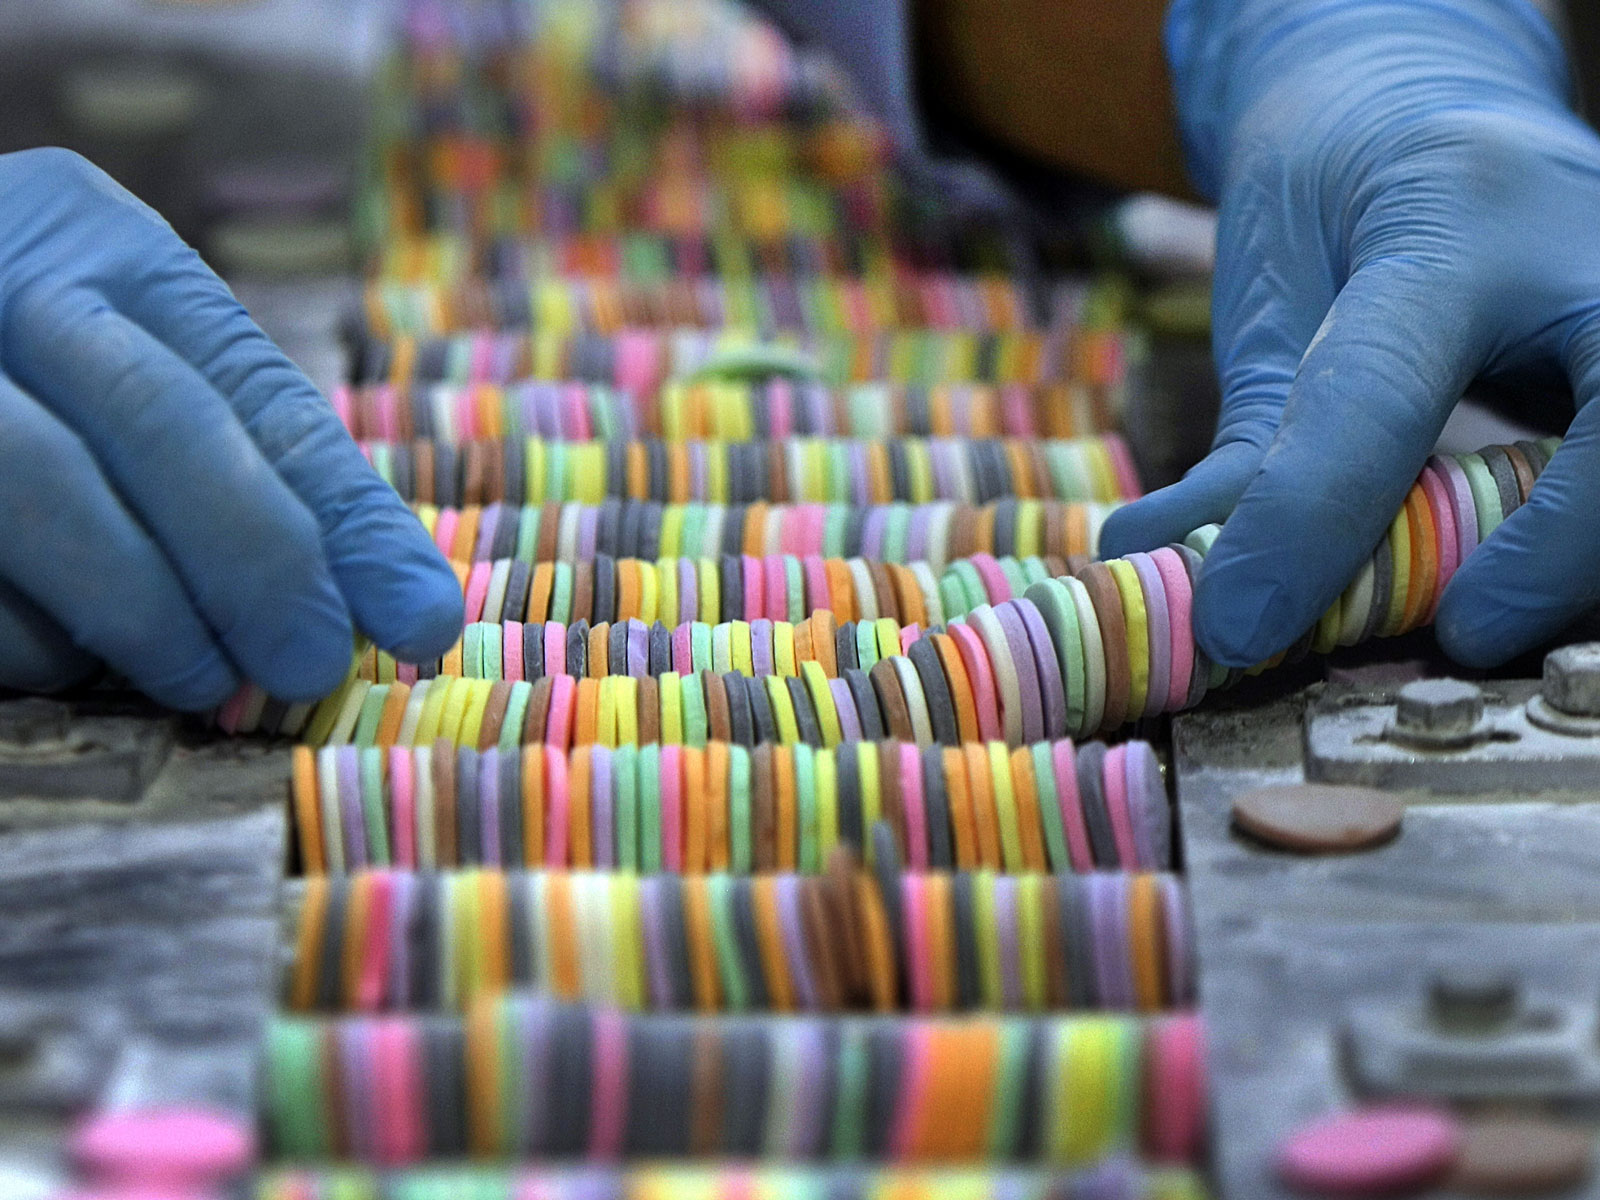 More Necco Drama: The Candy Brand's Factory Has Suddenly Shuttered